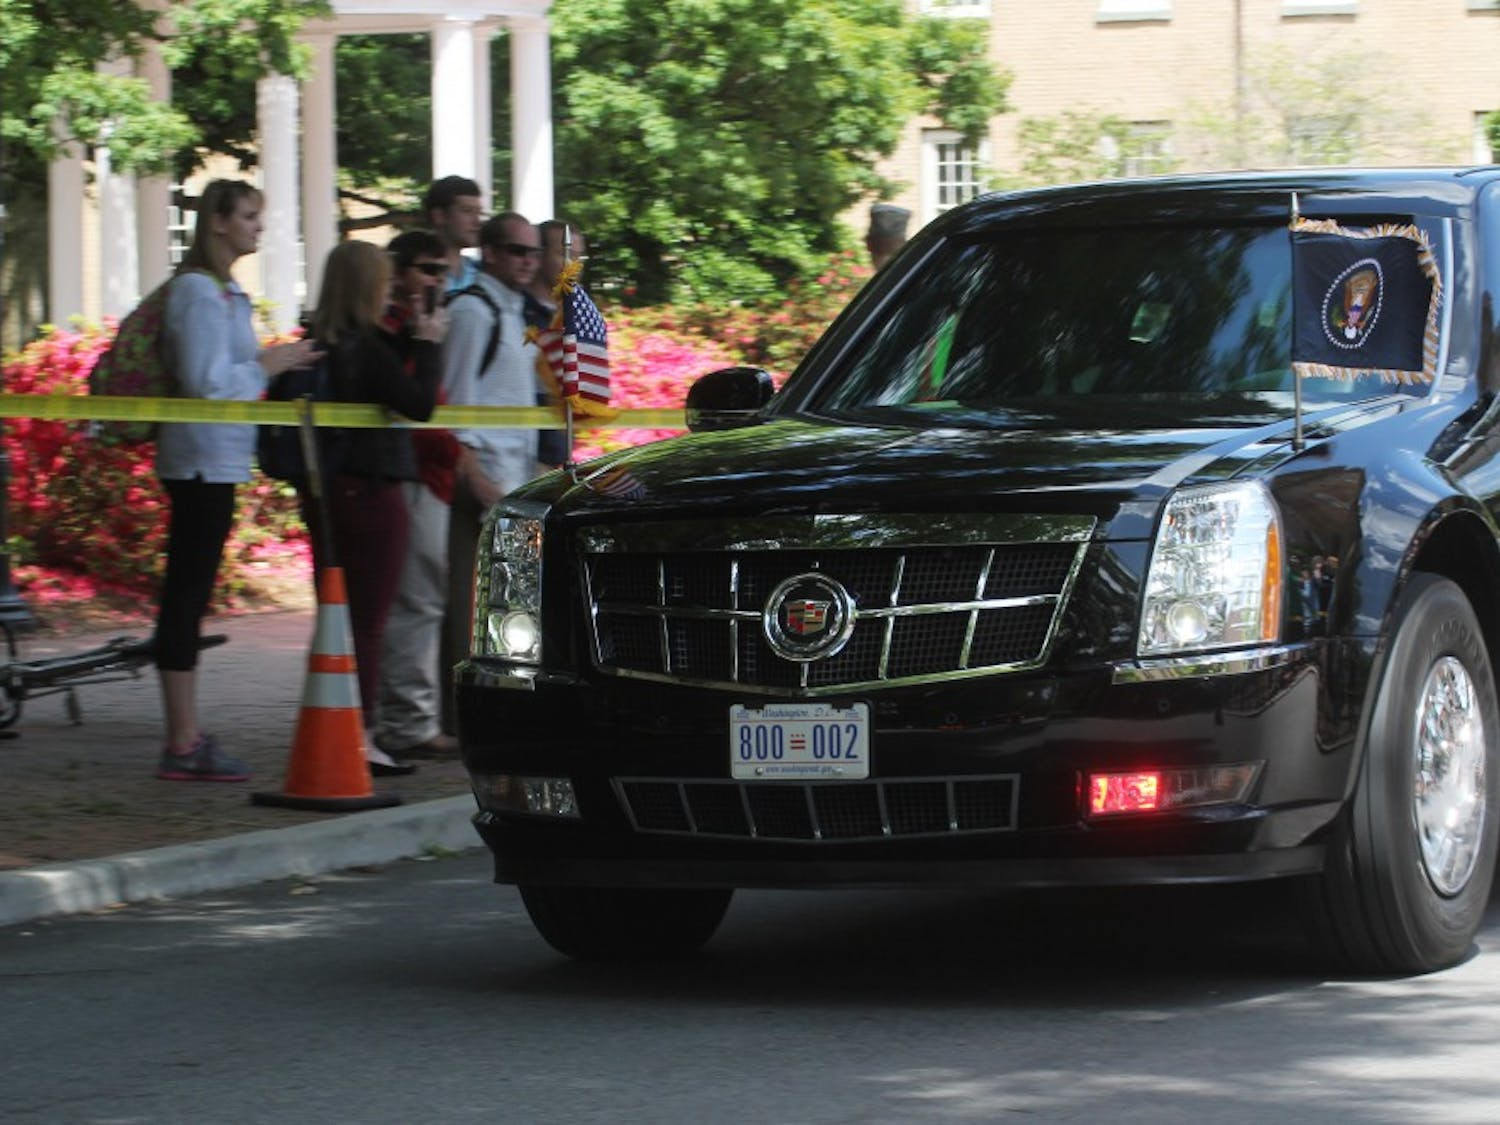 The motorcade on its way to Memorial Hall.